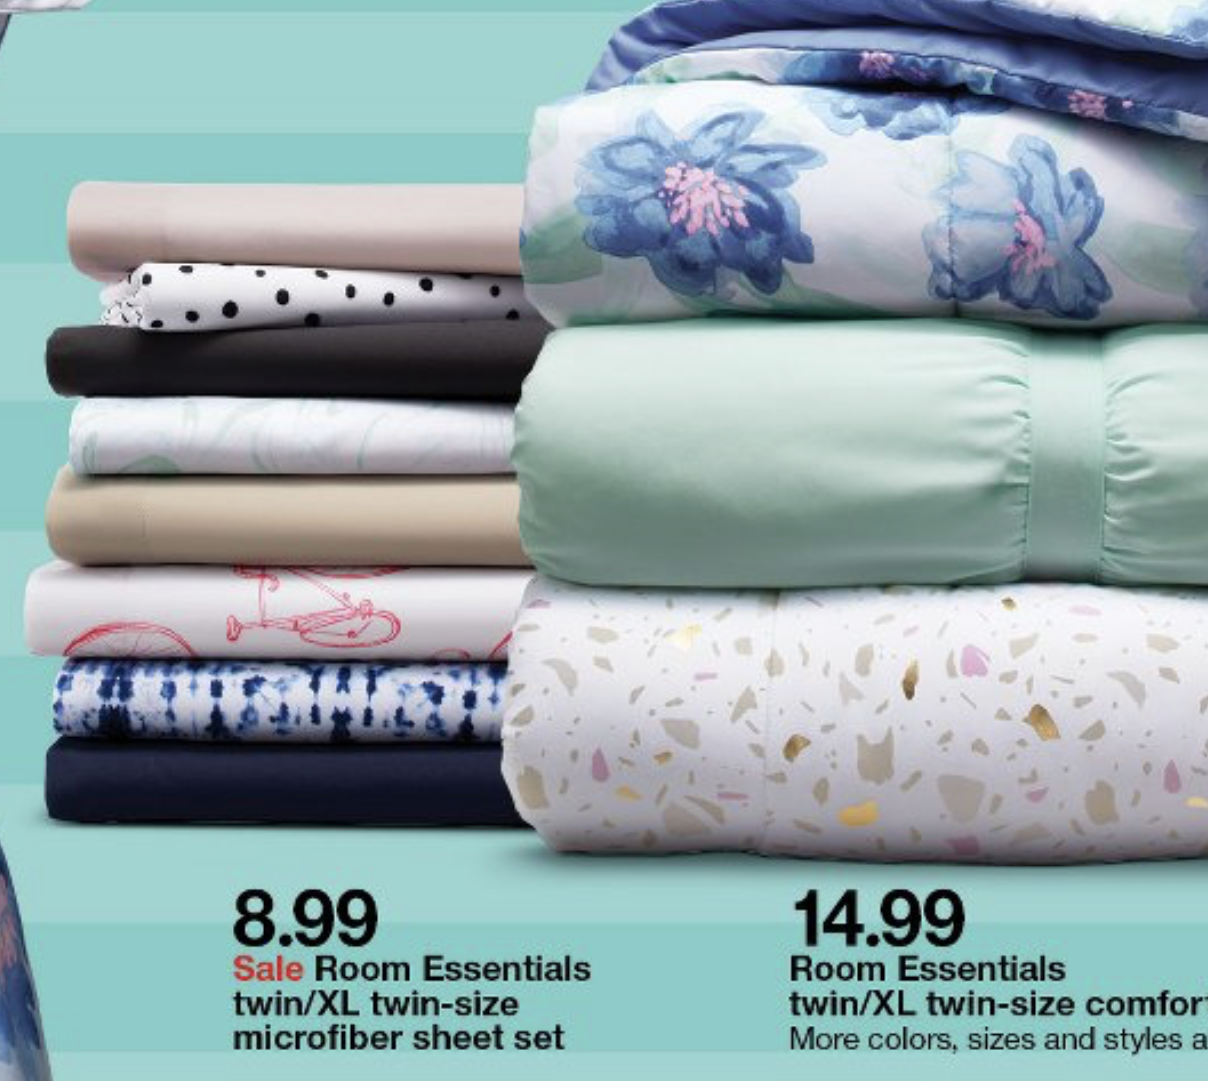 Target Has Amazing Deals For College Dorms and Household Items ...